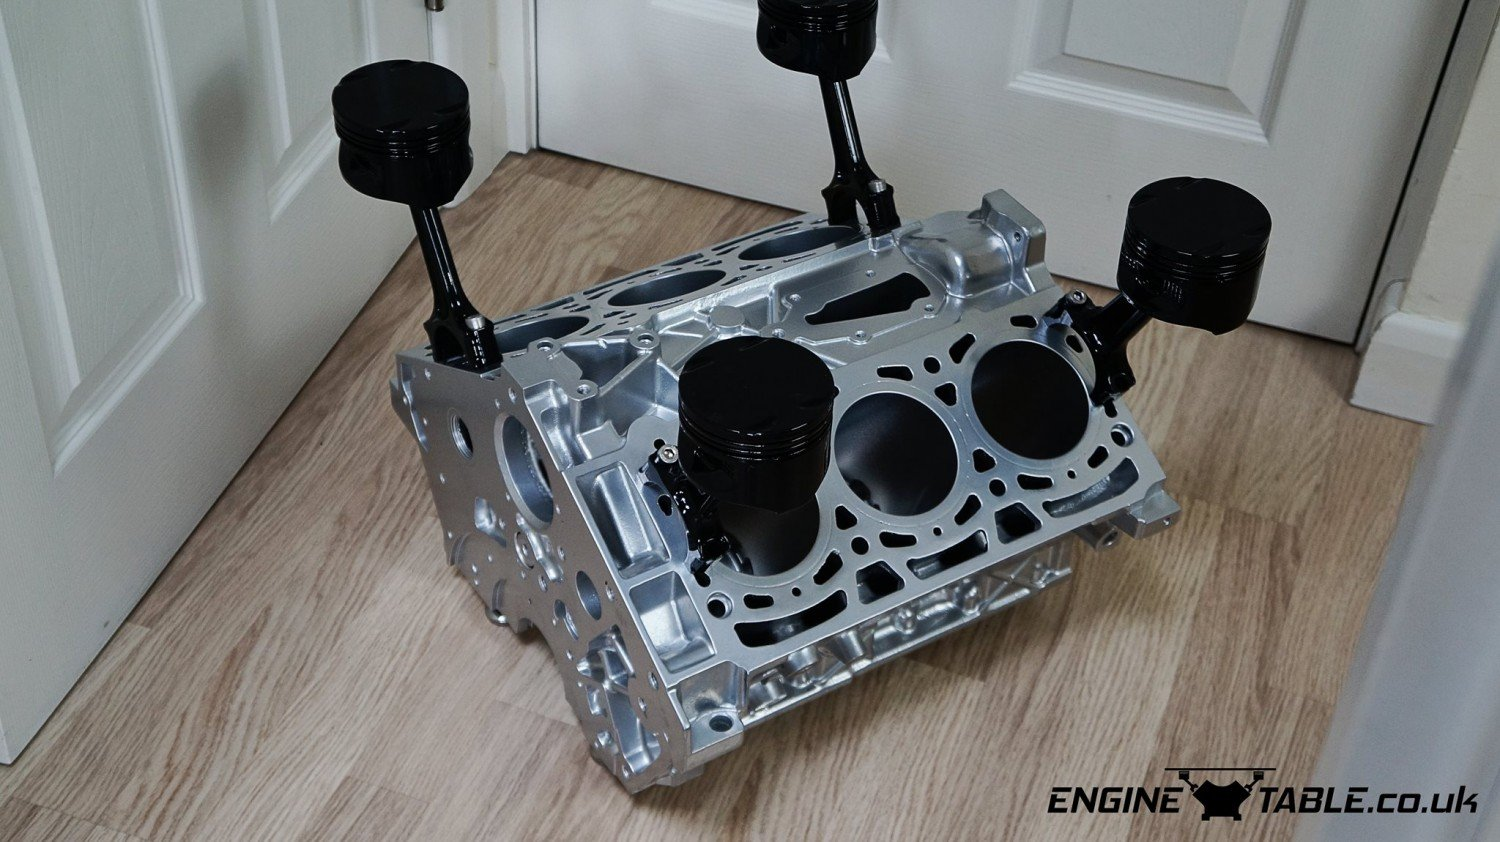 Amazing V6 Engine Coffee Table By Engine Table Uk